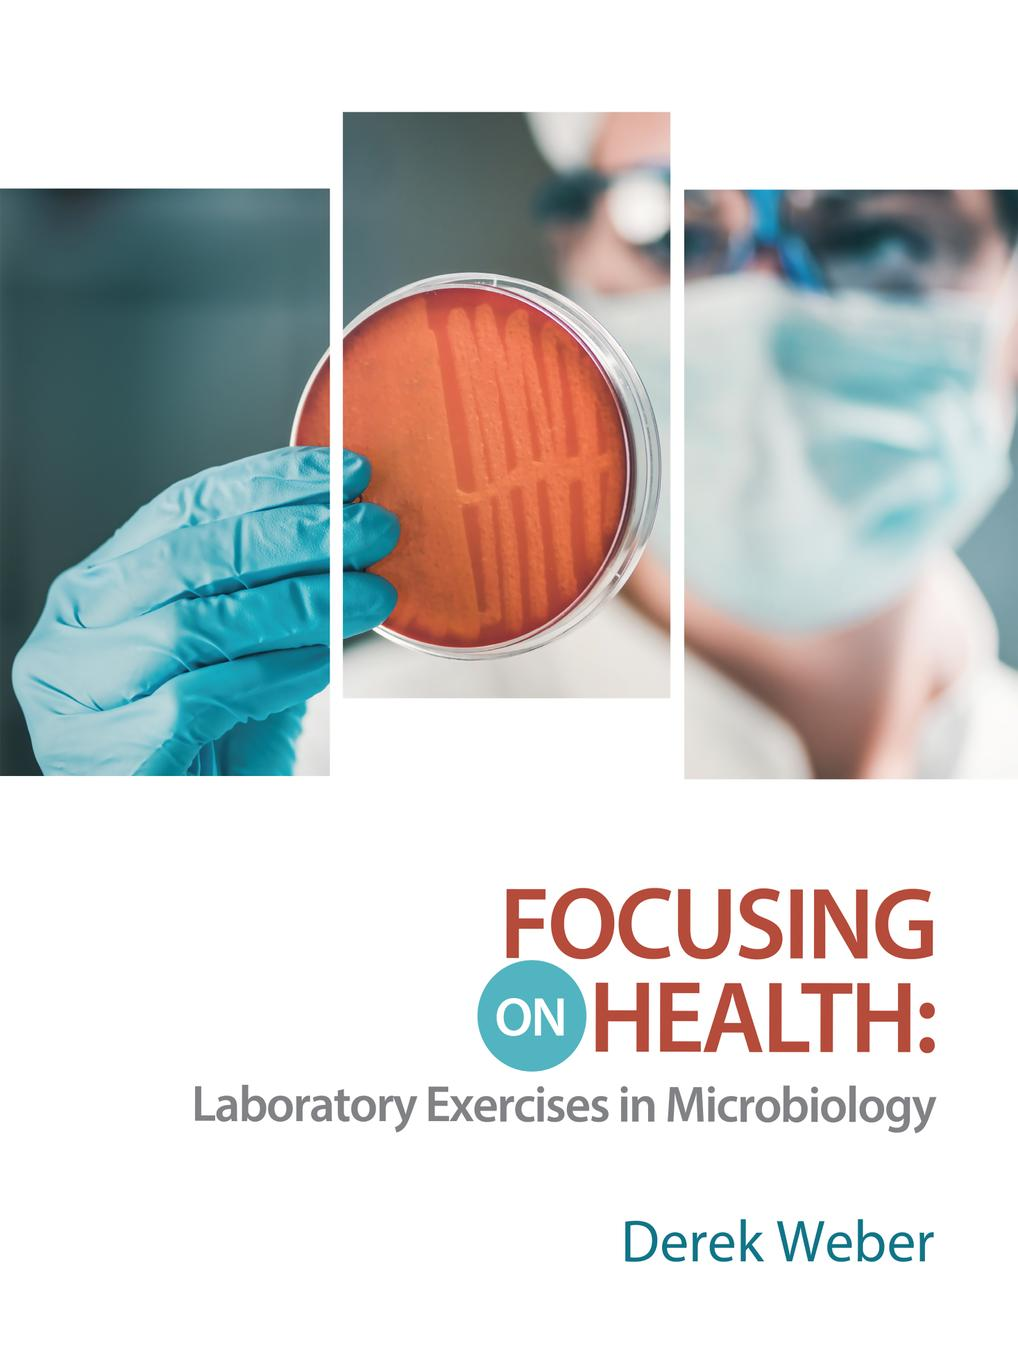 Focusing on Health: Laboratory Exercises in Microbiology